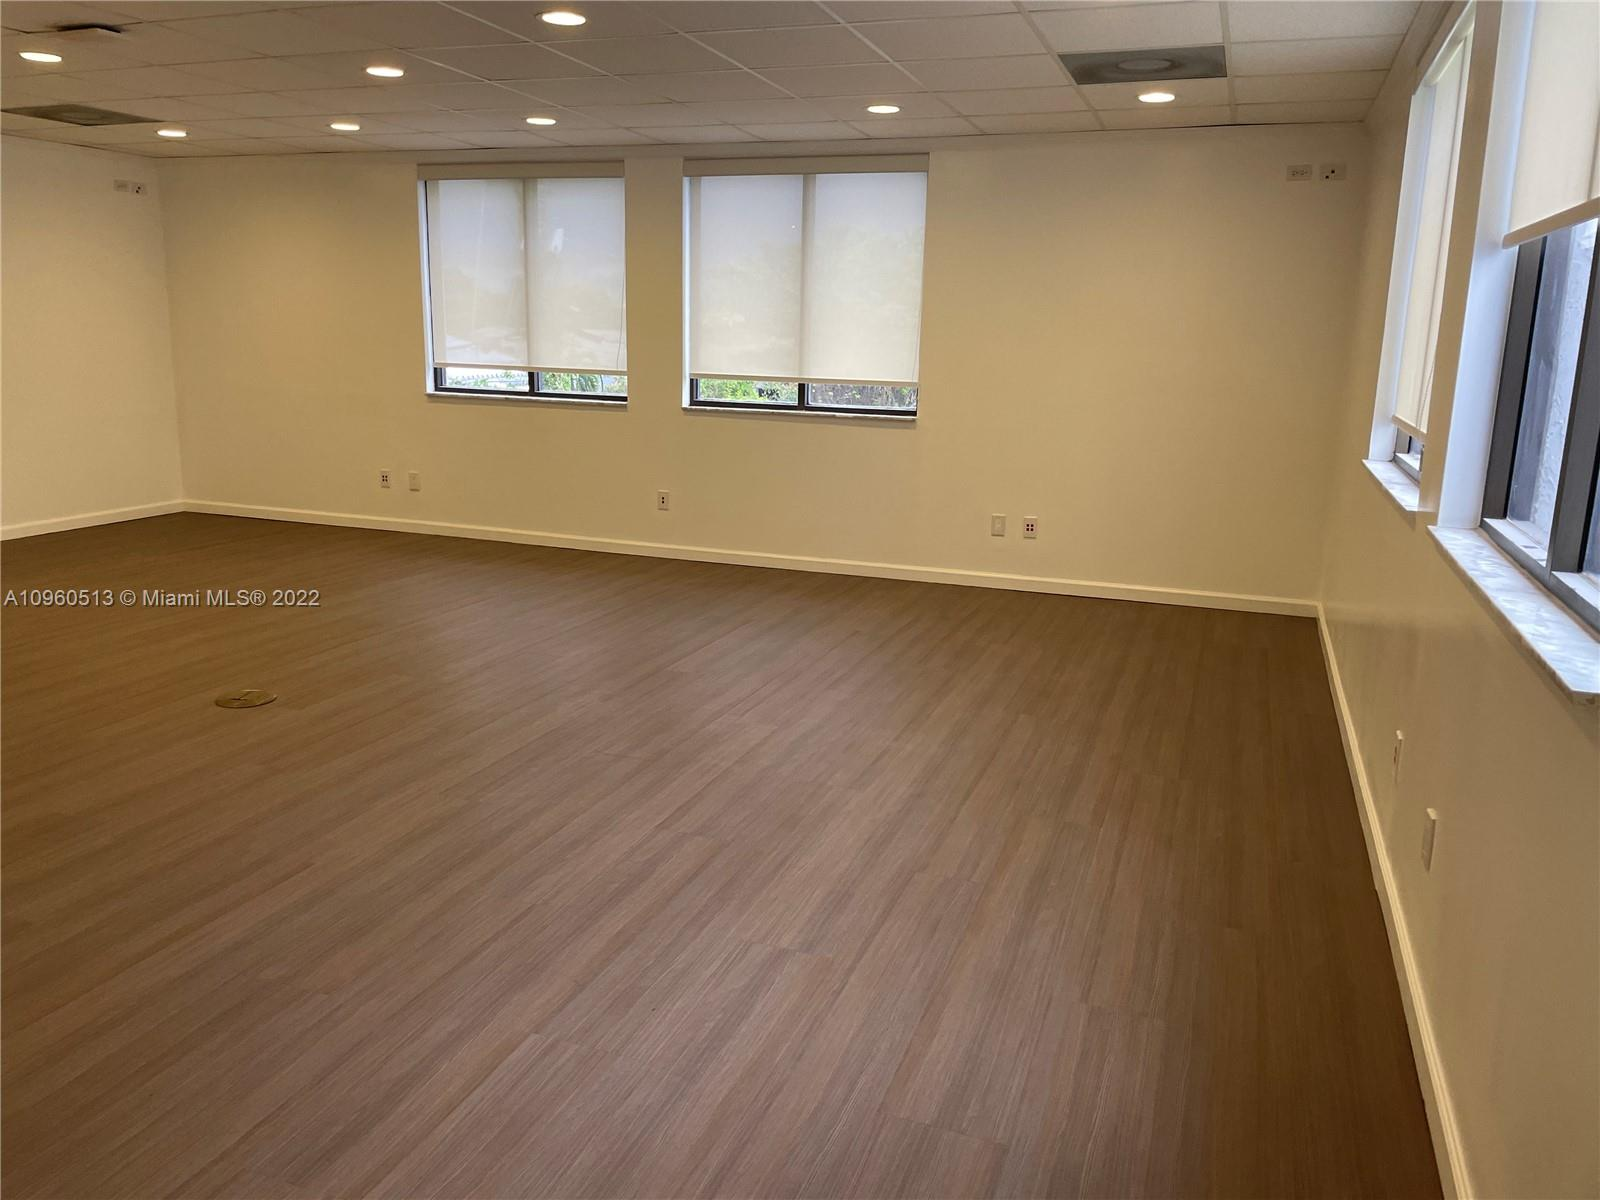 2843 Pembroke Rd, Hollywood, Florida 33020, ,Commercial Sale,For Sale,2843 Pembroke Rd,A10960513